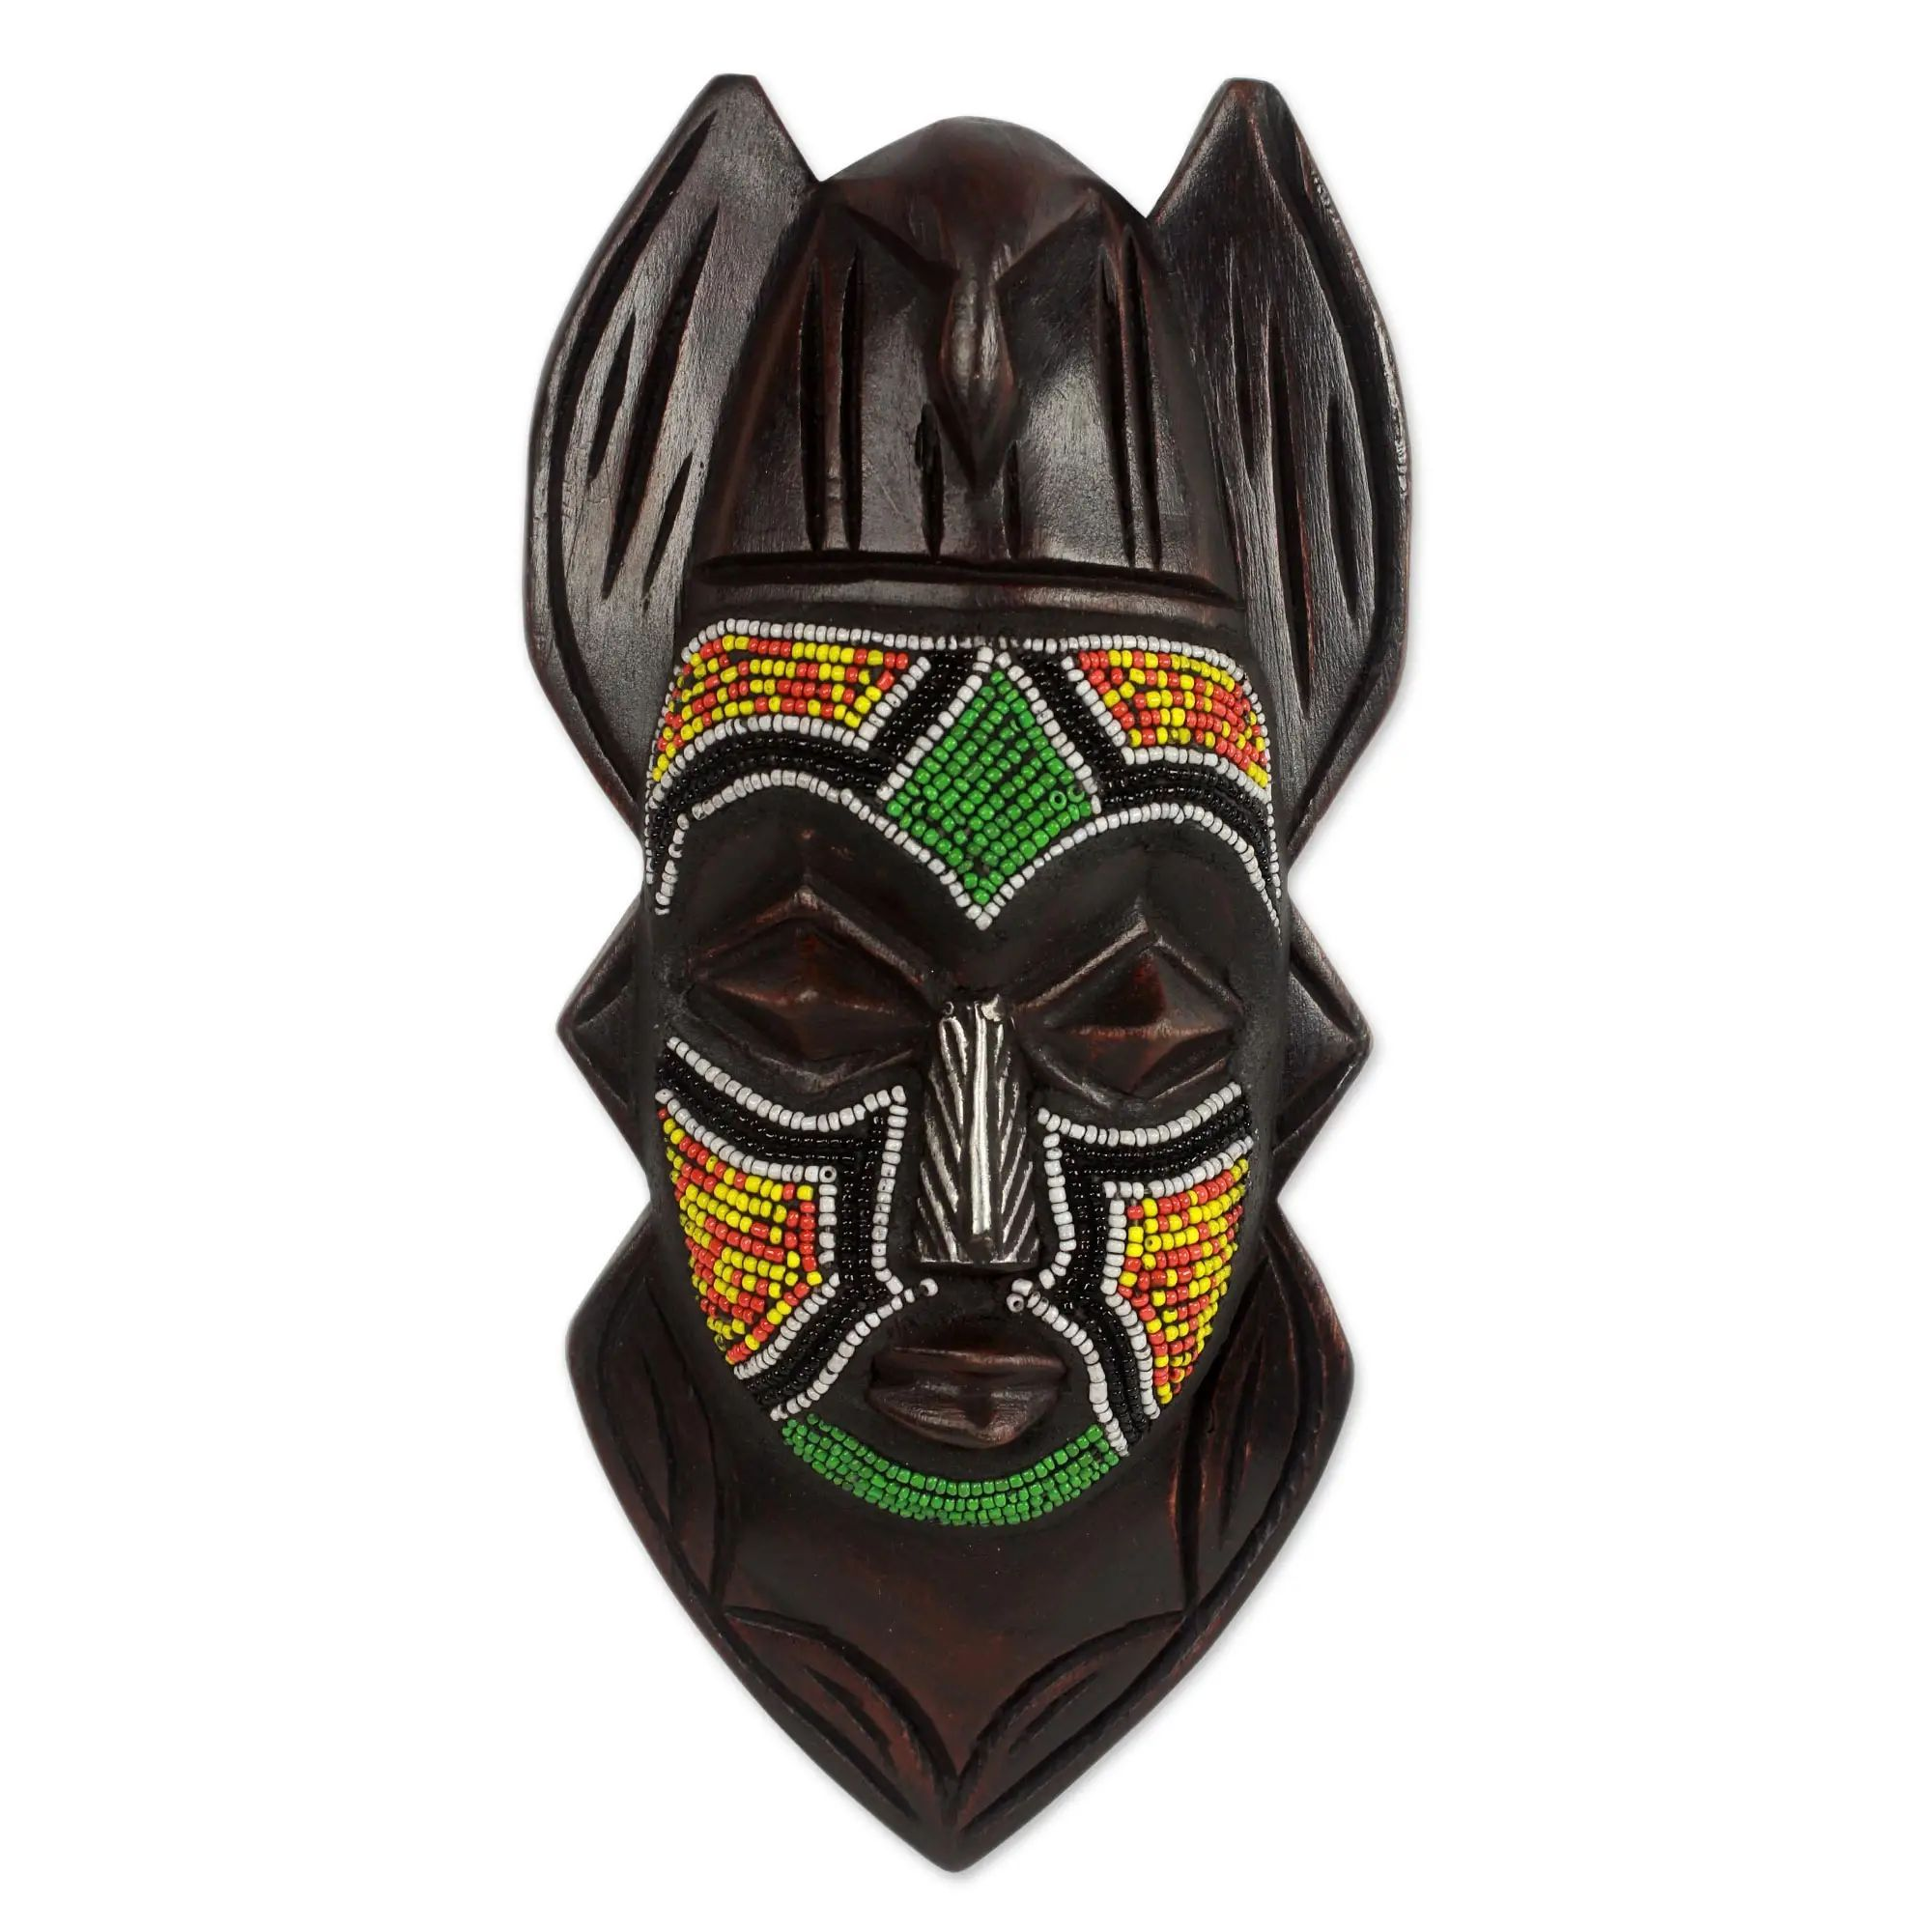 Authentic African Hand Made Dove Anoma Ba Mask by Awudu Saaed